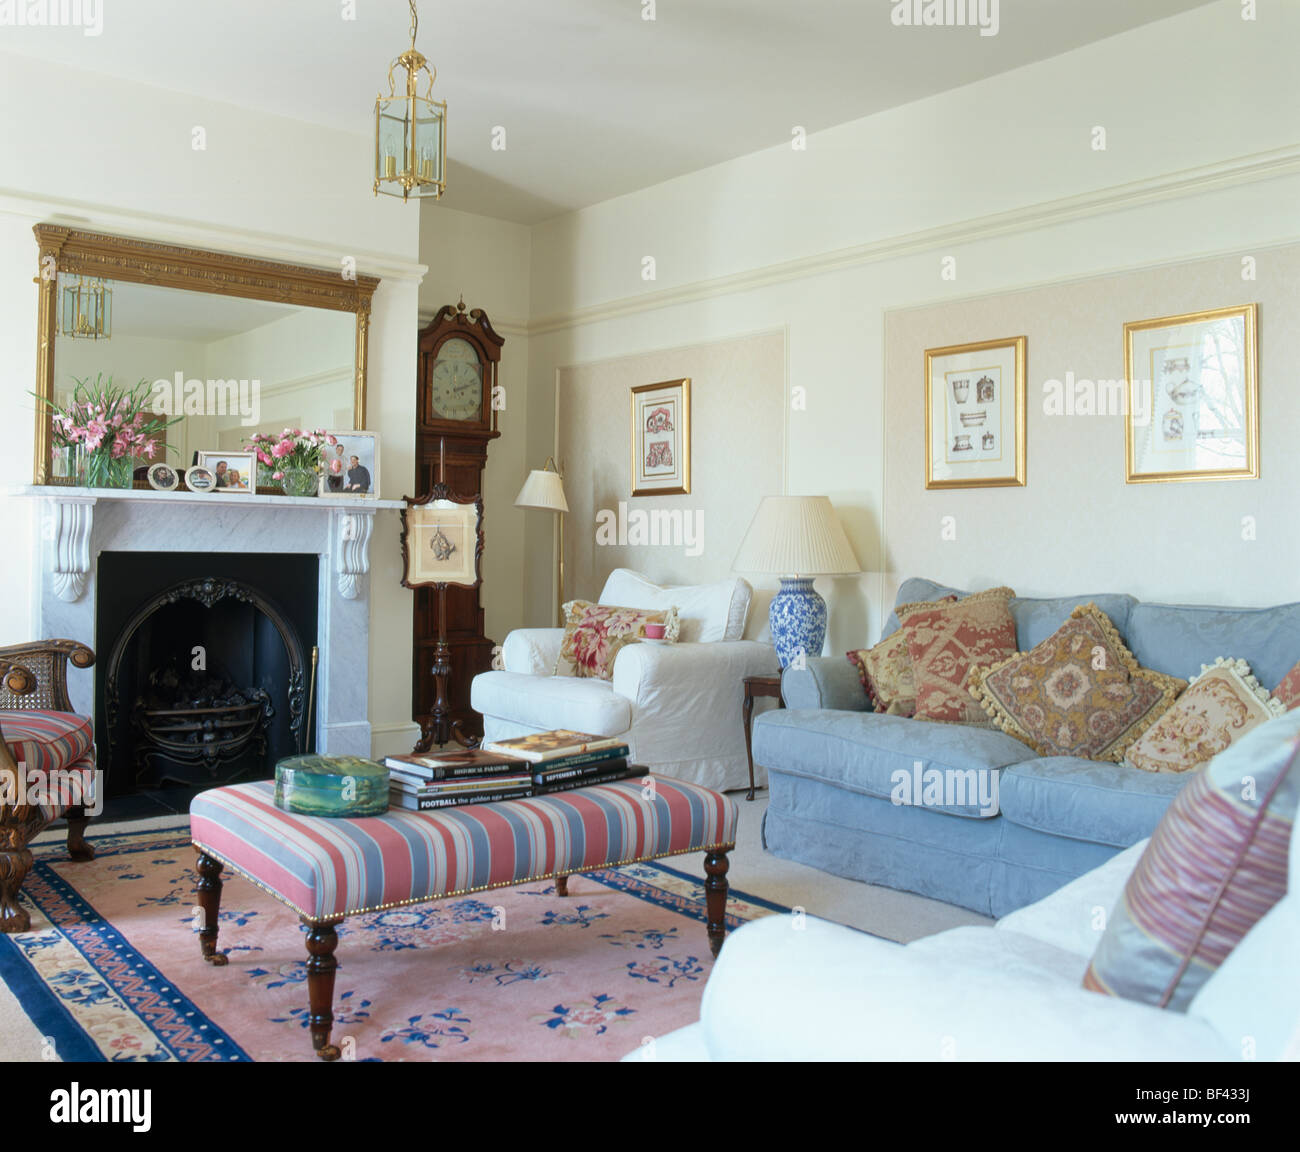 Striped upholstered stool on pink Chinese rug in front of fireplace ...